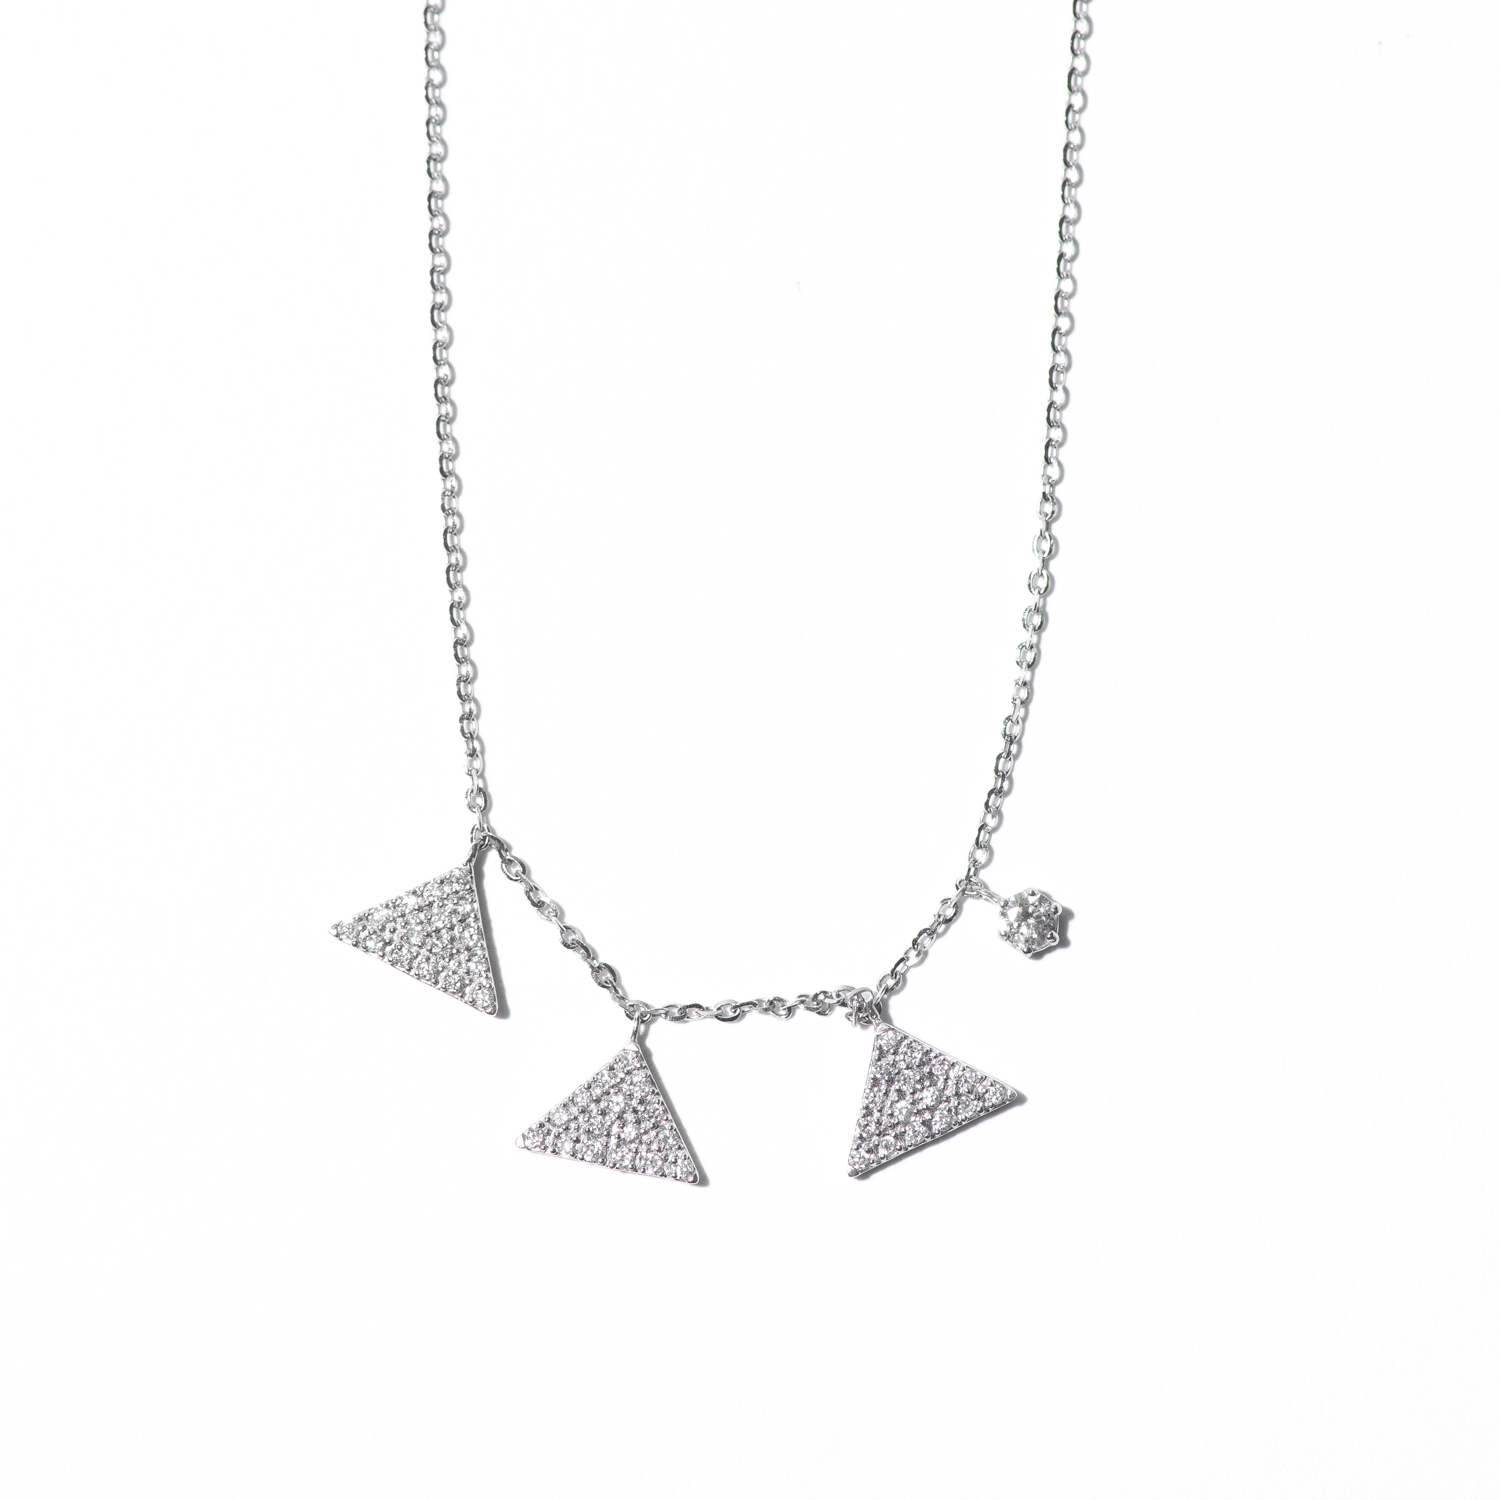 Design Fifteen. - Micro Pave Diamond Geometric Necklace in White Gold